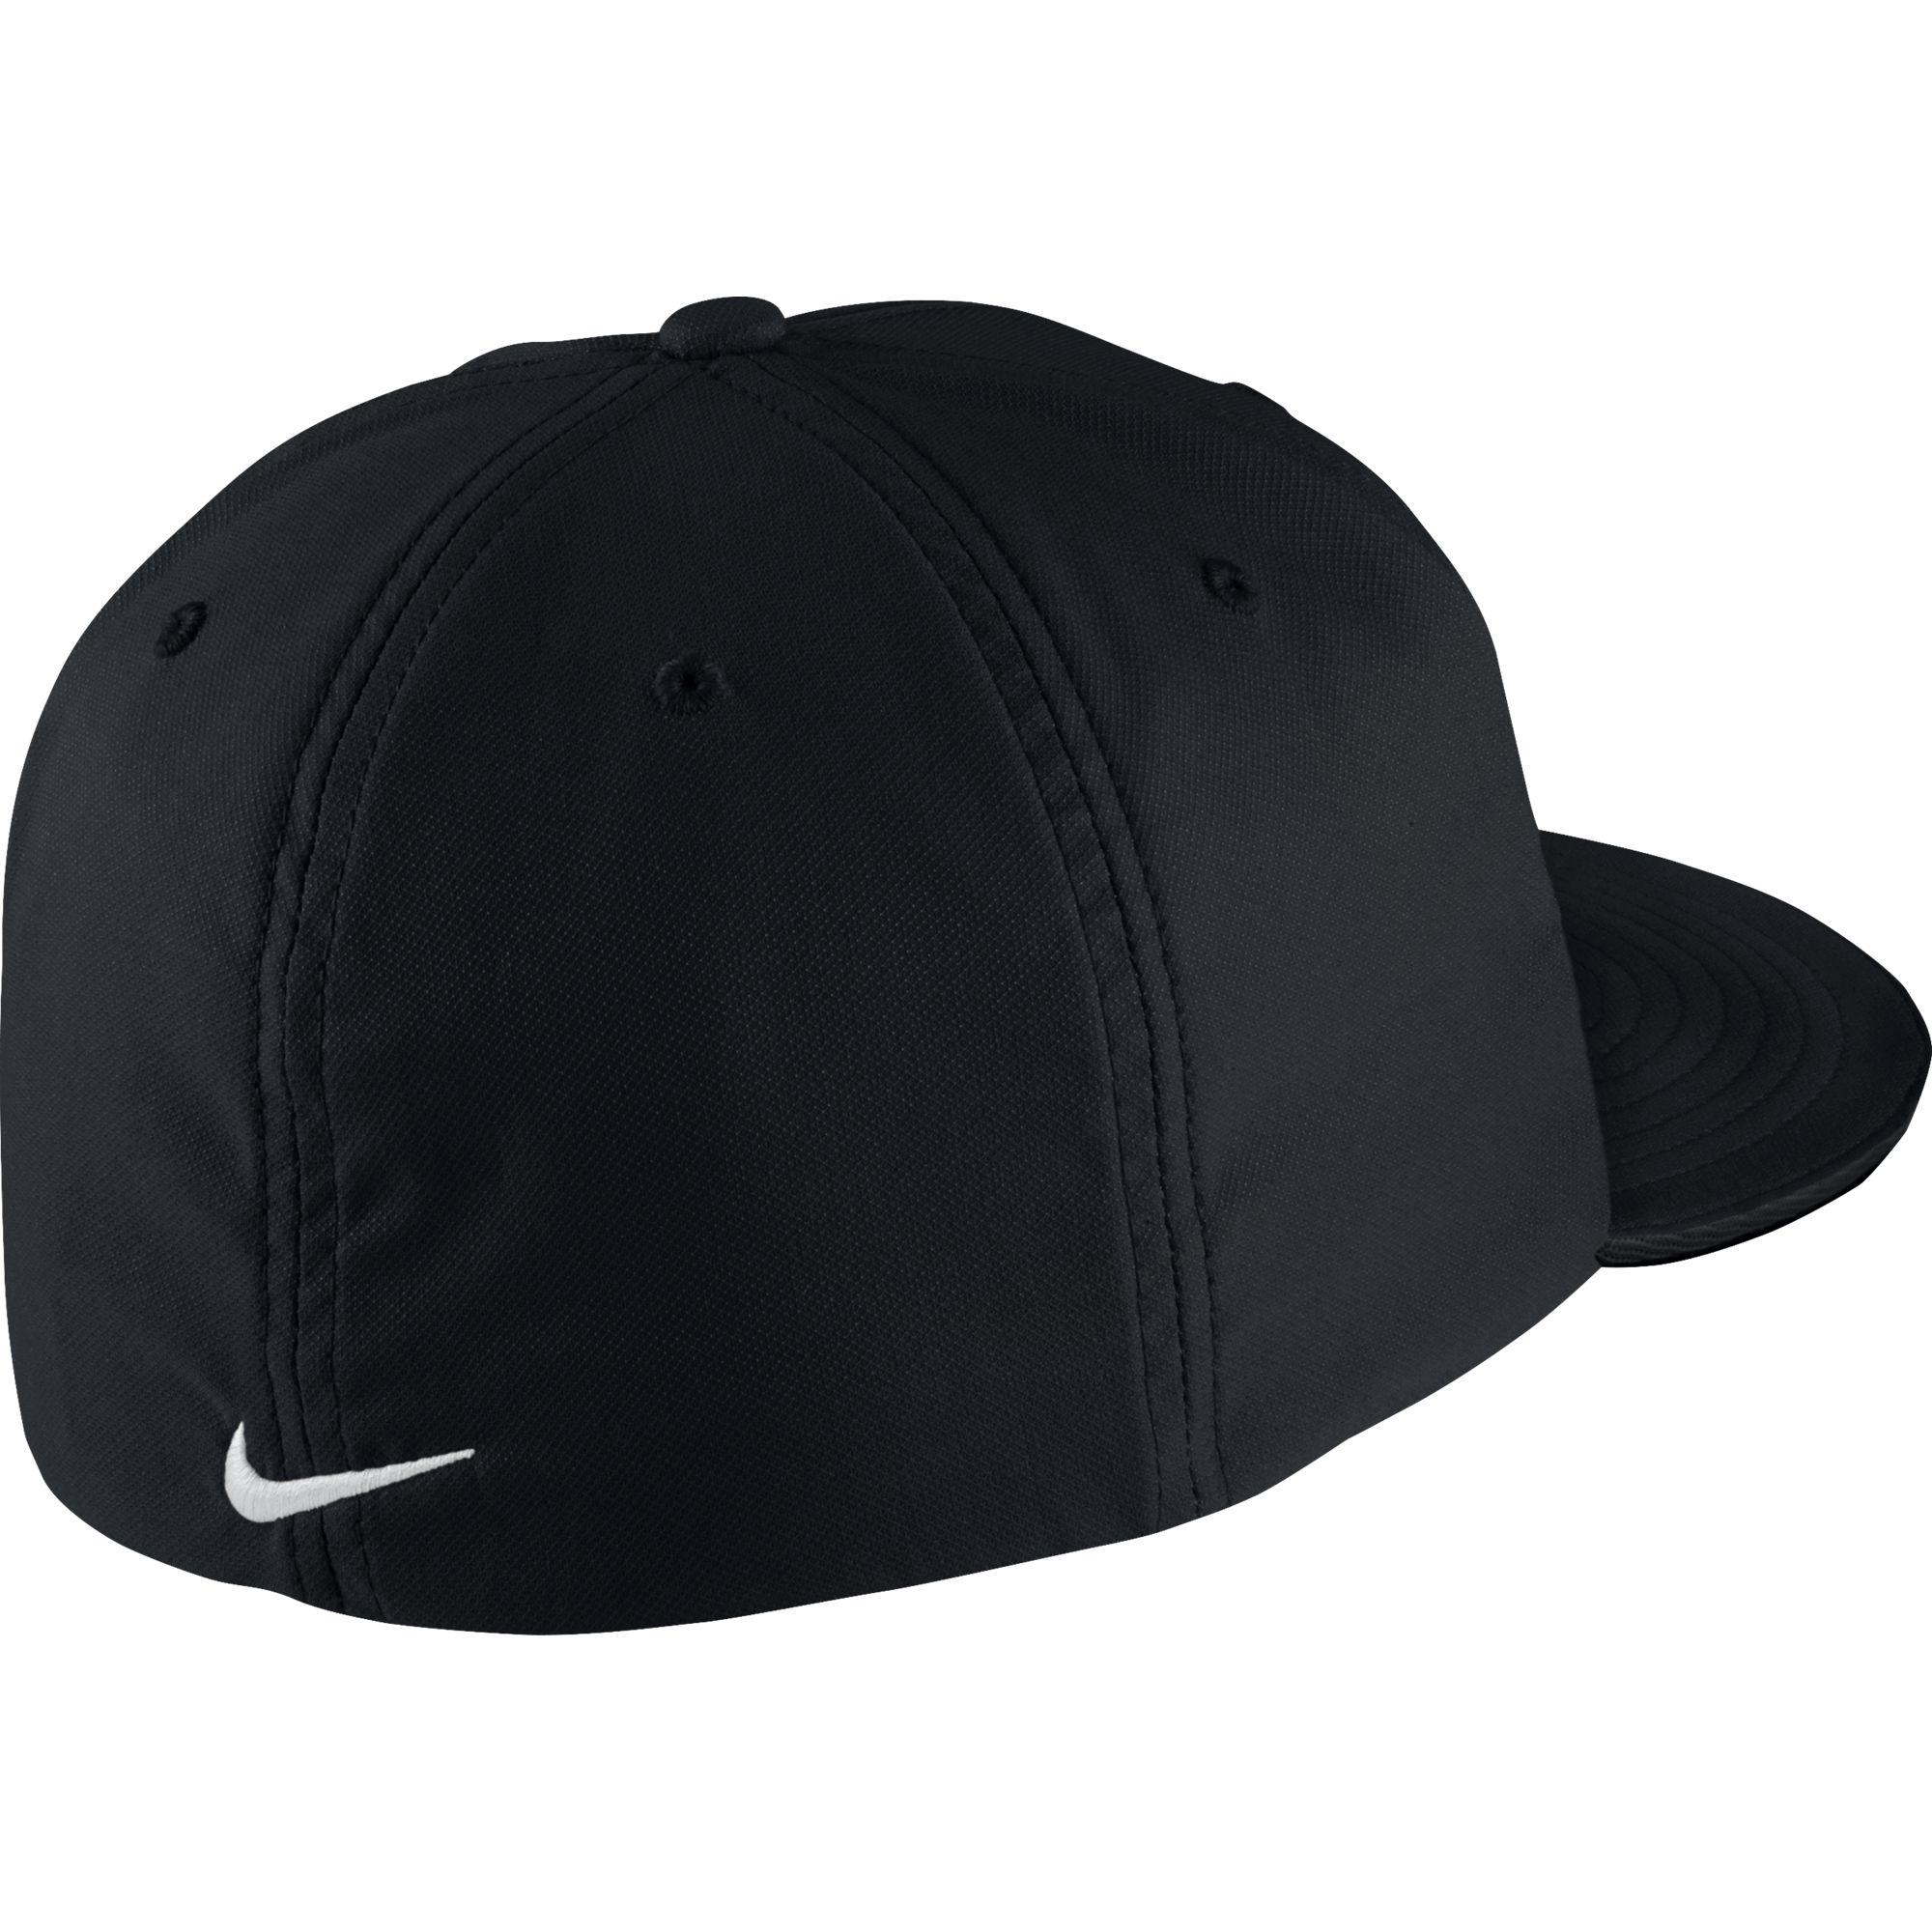 New Nike Golf True Tour Flat Bill Fitted Cap Hat - Pick Color  0ff7f9d8b4b